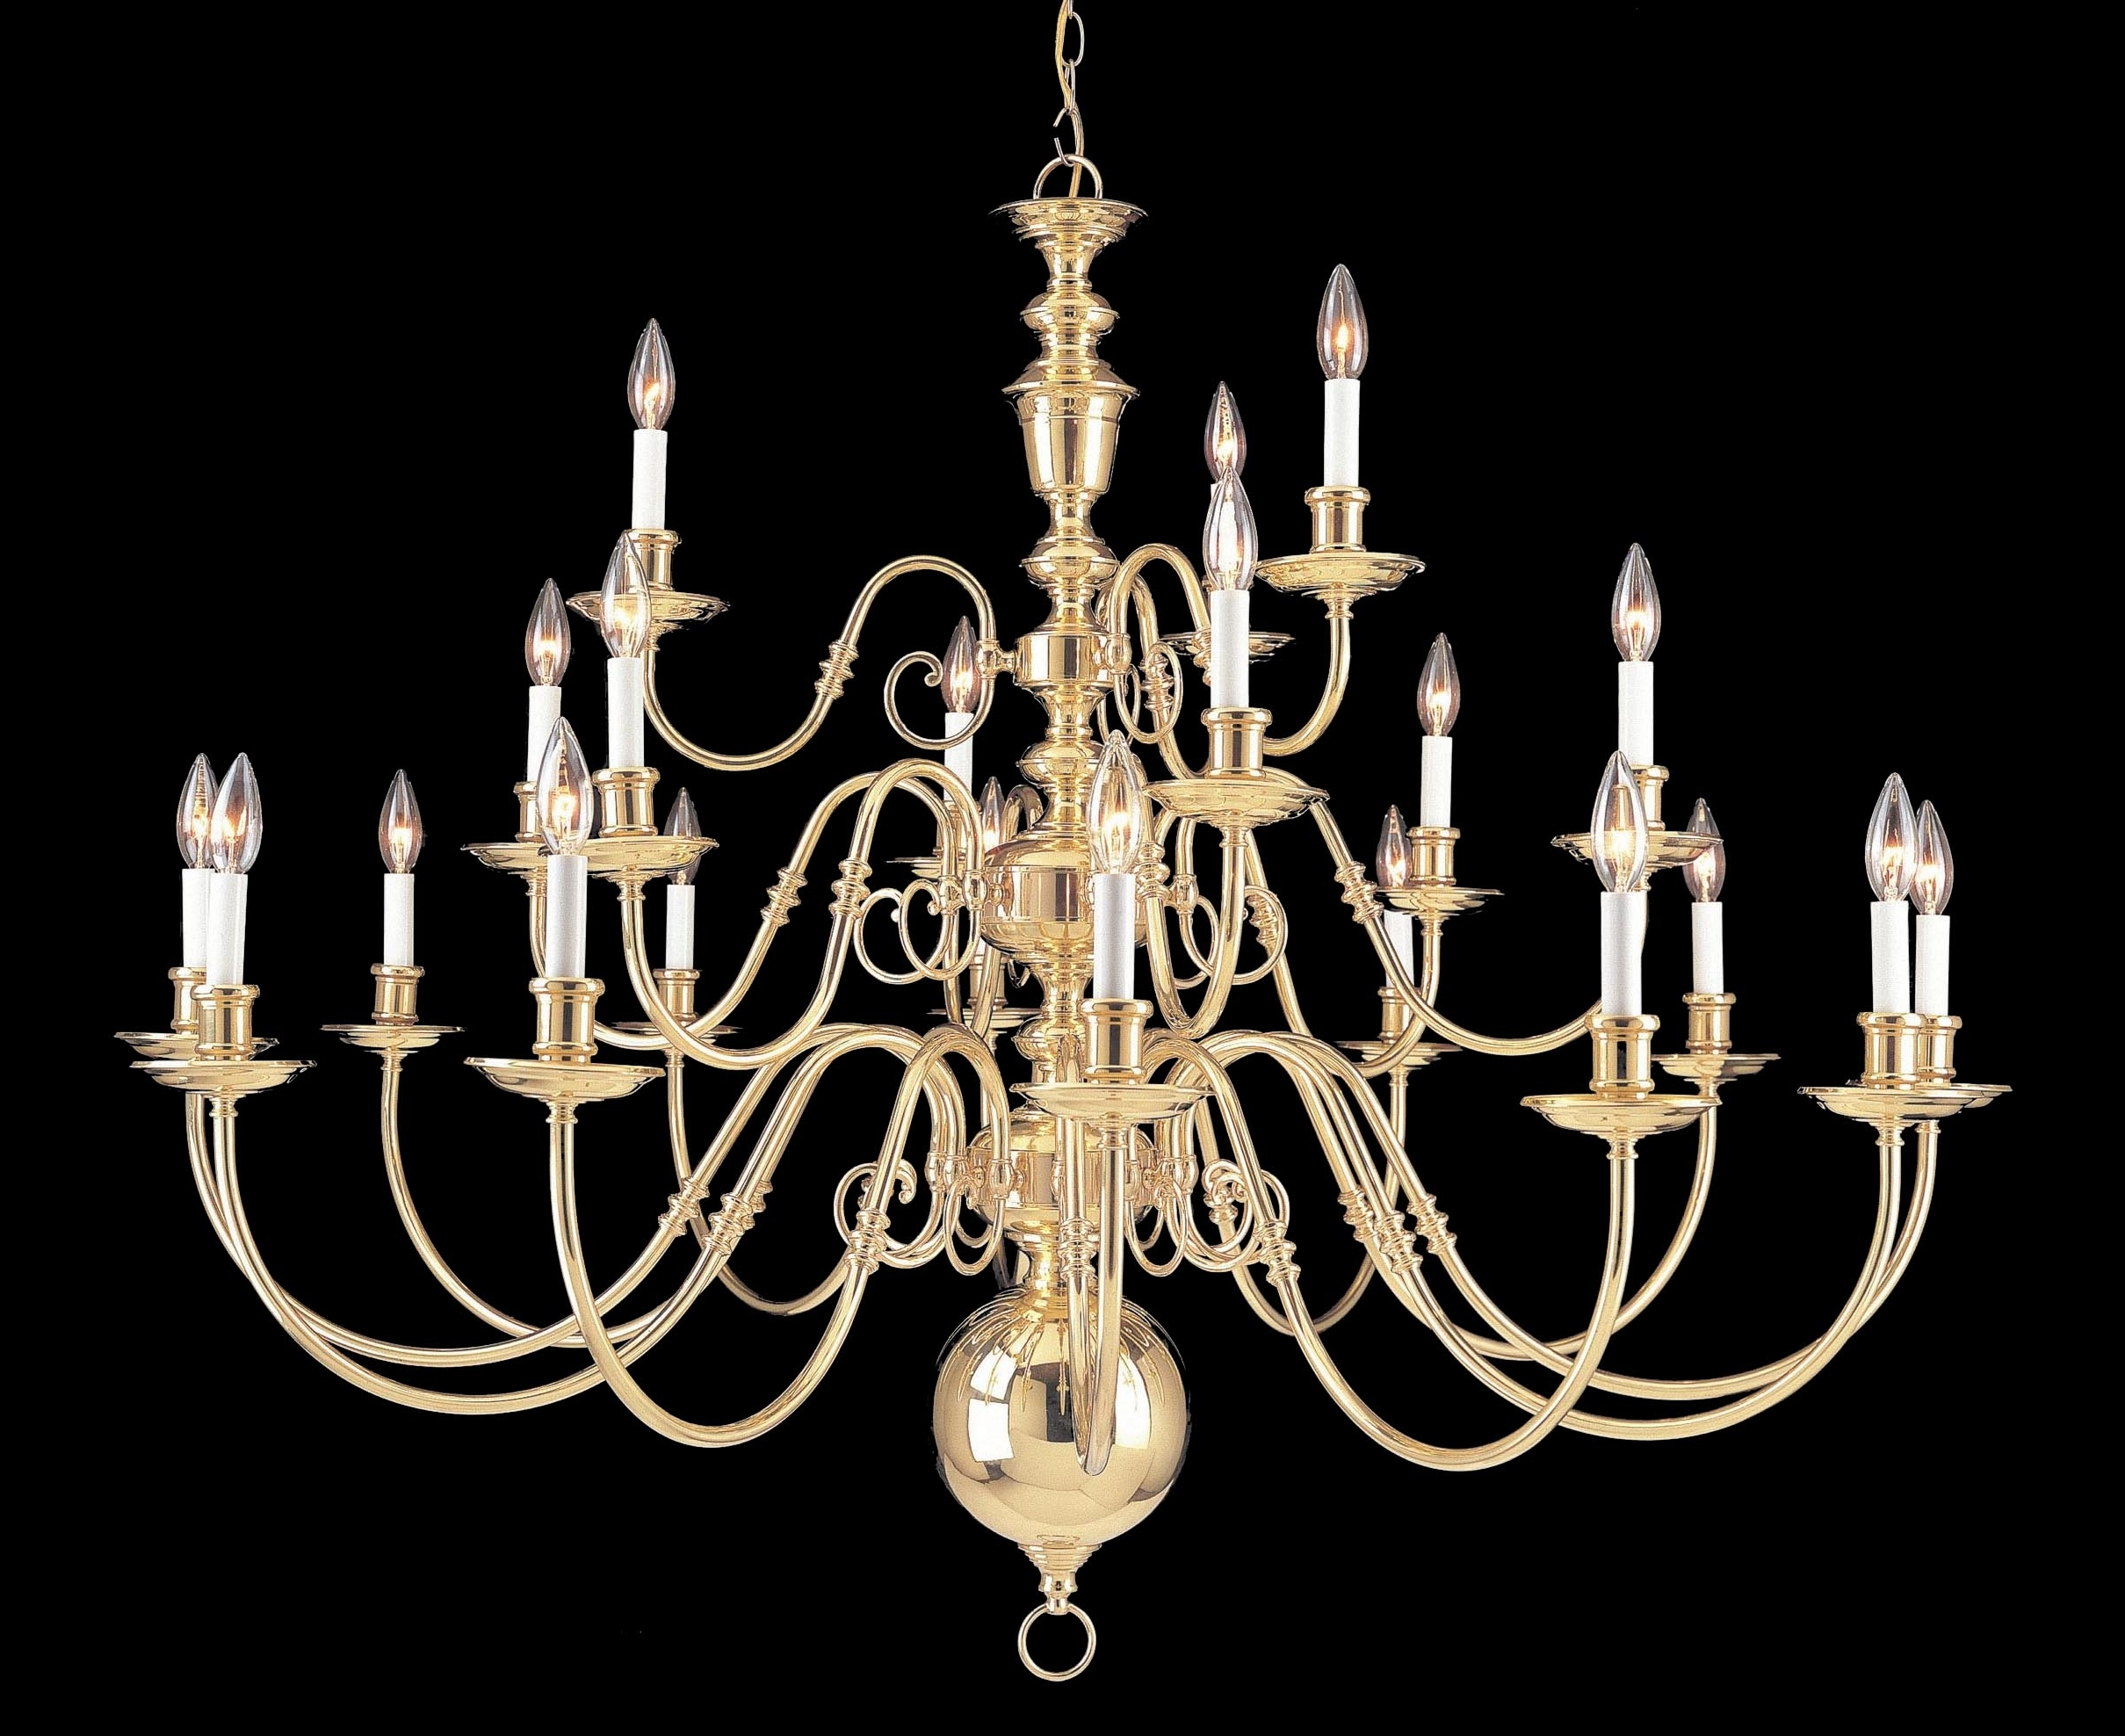 Large Brass Chandelier In 2019 Largelighting Bronze Chandeliers Gallery 5 Of 20